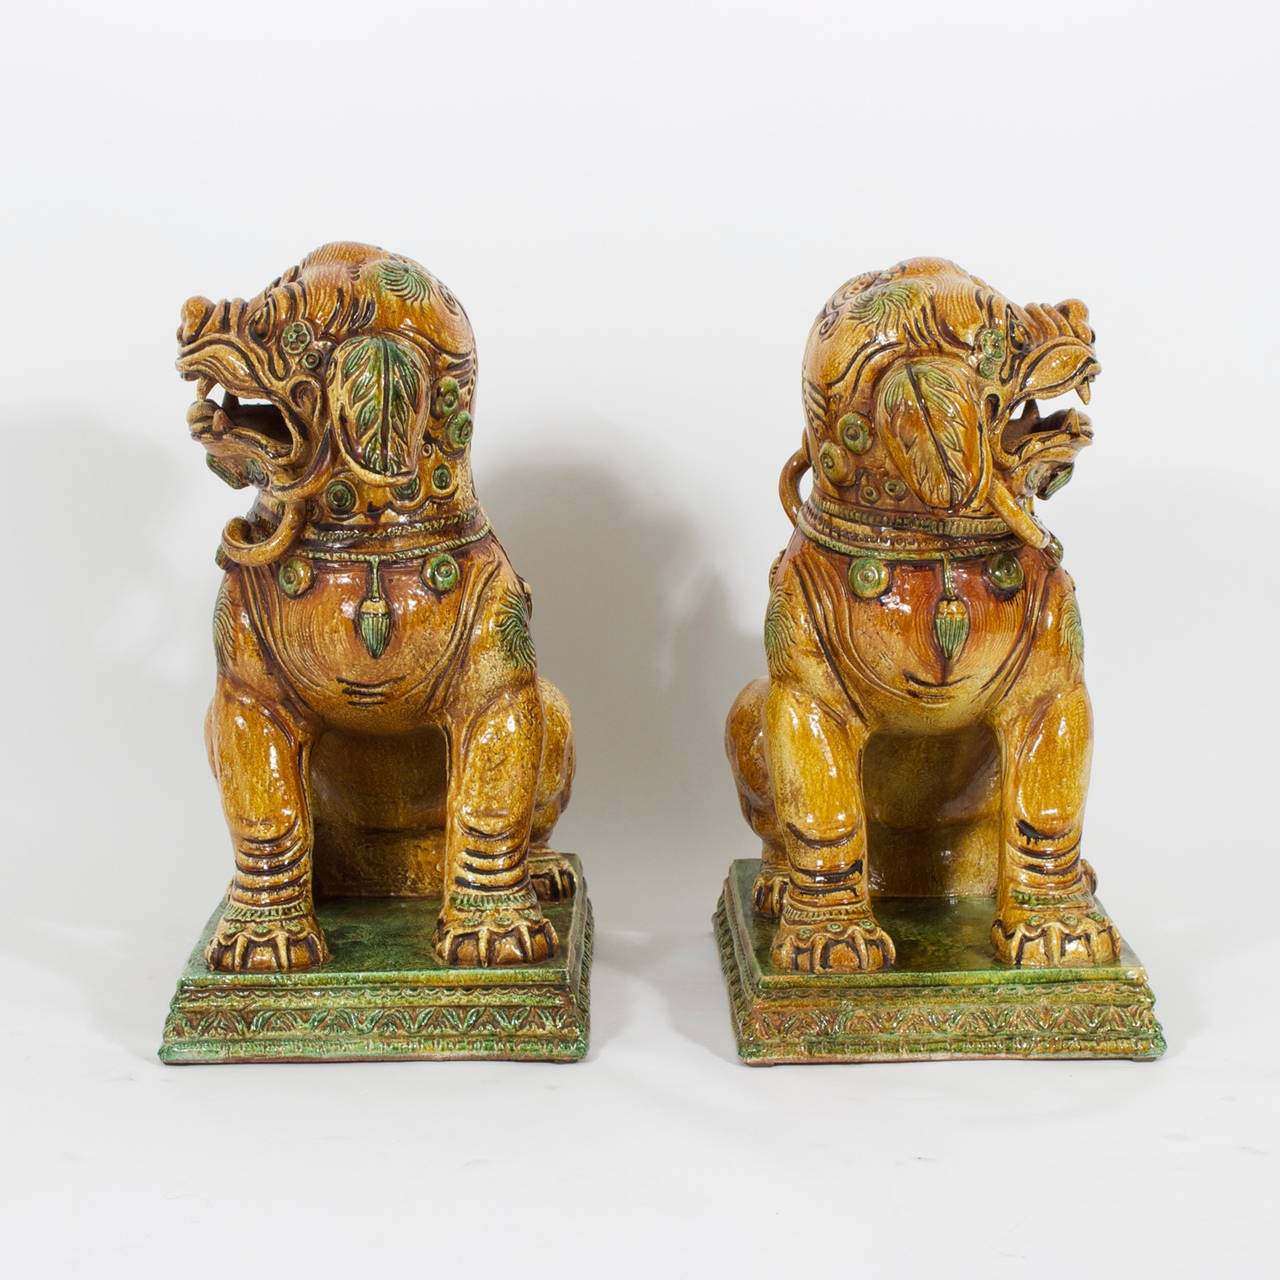 Impressive large true pair of Italian, glazed terra cotta or Majolica foo dogs with subdued colors, powerful stance and just the right touch of whimsy . Traditional form with Mid-Century pedigree.